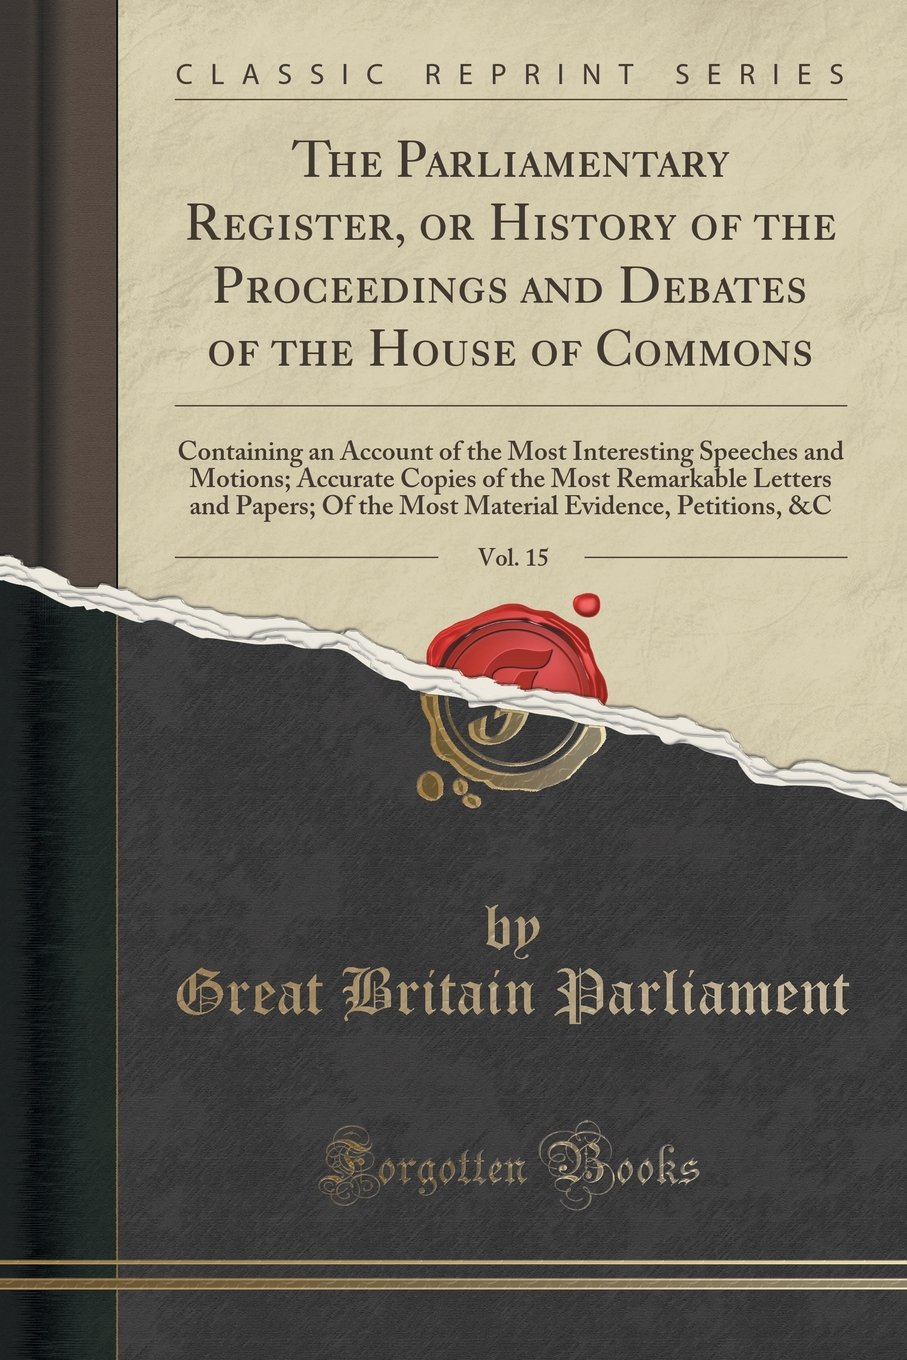 Read Online The Parliamentary Register, or History of the Proceedings and Debates of the House of Commons, Vol. 15: Containing an Account of the Most Interesting ... Letters and Papers; Of the Most Material Evi pdf epub